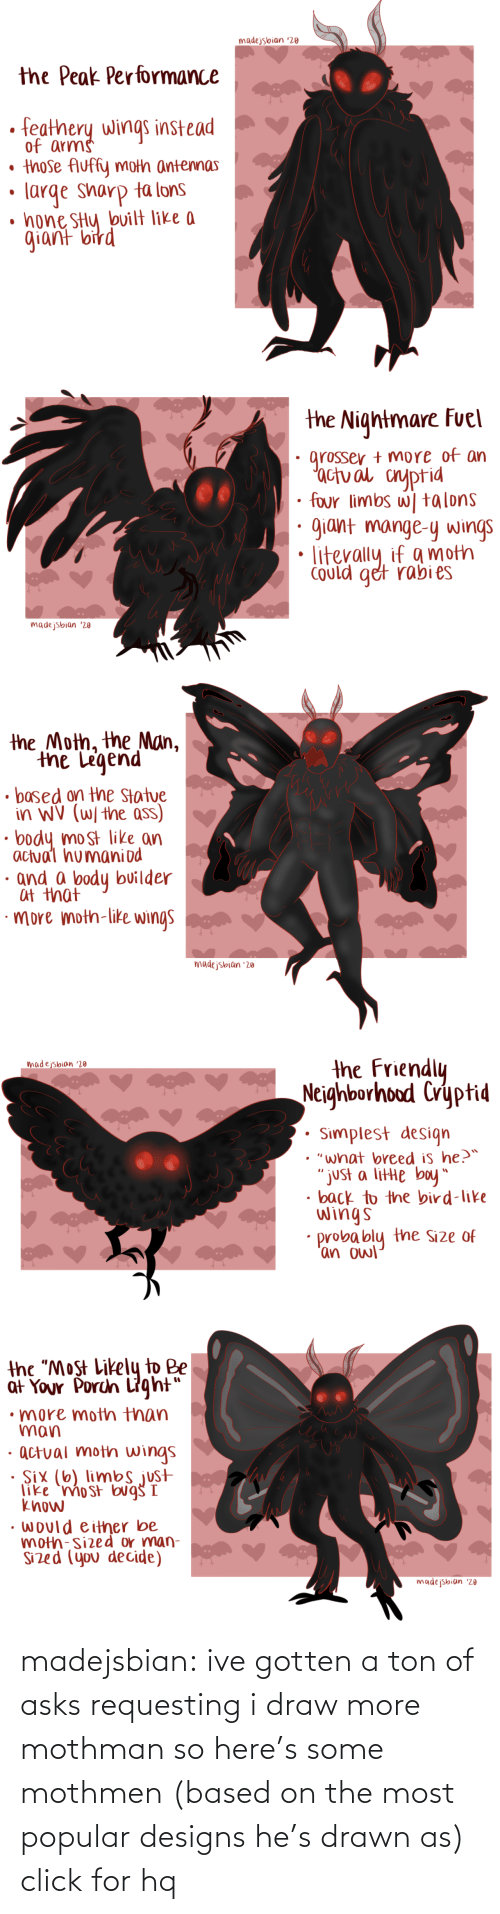 "actual: madejsbian '20  the Peak Performance  feathery wings instead  of arms  • those Auffy moth antennas  large sharp ta lons  • hone SHy bvilt like a  giant bird   the Nightmare Fuel  grosser + more of an  'actual cnyptid  four limbs w| talons  giant mange-y wings  Could get rabi es  madejsbian '20   the Moth, the Man,  the Legend  • based on the Statue  in WV (W/ the ass)  body most like an  actual humaniod  · and a body builder  at that  ·more moth-like wings  madejsbian '20   the Friendly  Neighborhood Cryptid  madejsbian '20  Simplest design  • ""what breed is he?™  ""just a litte boy""  • back to the bird-like  wings  probably the Size of  'an owl   the ""Most Likely to Be  at Your Porch Light""  •more moth than  man  · actual moth wings  · Six (6) limbs just  like 'mo st bug I  know  • would either be  moth-sized or man-  Sized (you decide)  madejsbian '20 madejsbian: ive gotten a ton of asks requesting i draw more mothman so here's some mothmen (based on the most popular designs he's drawn as)